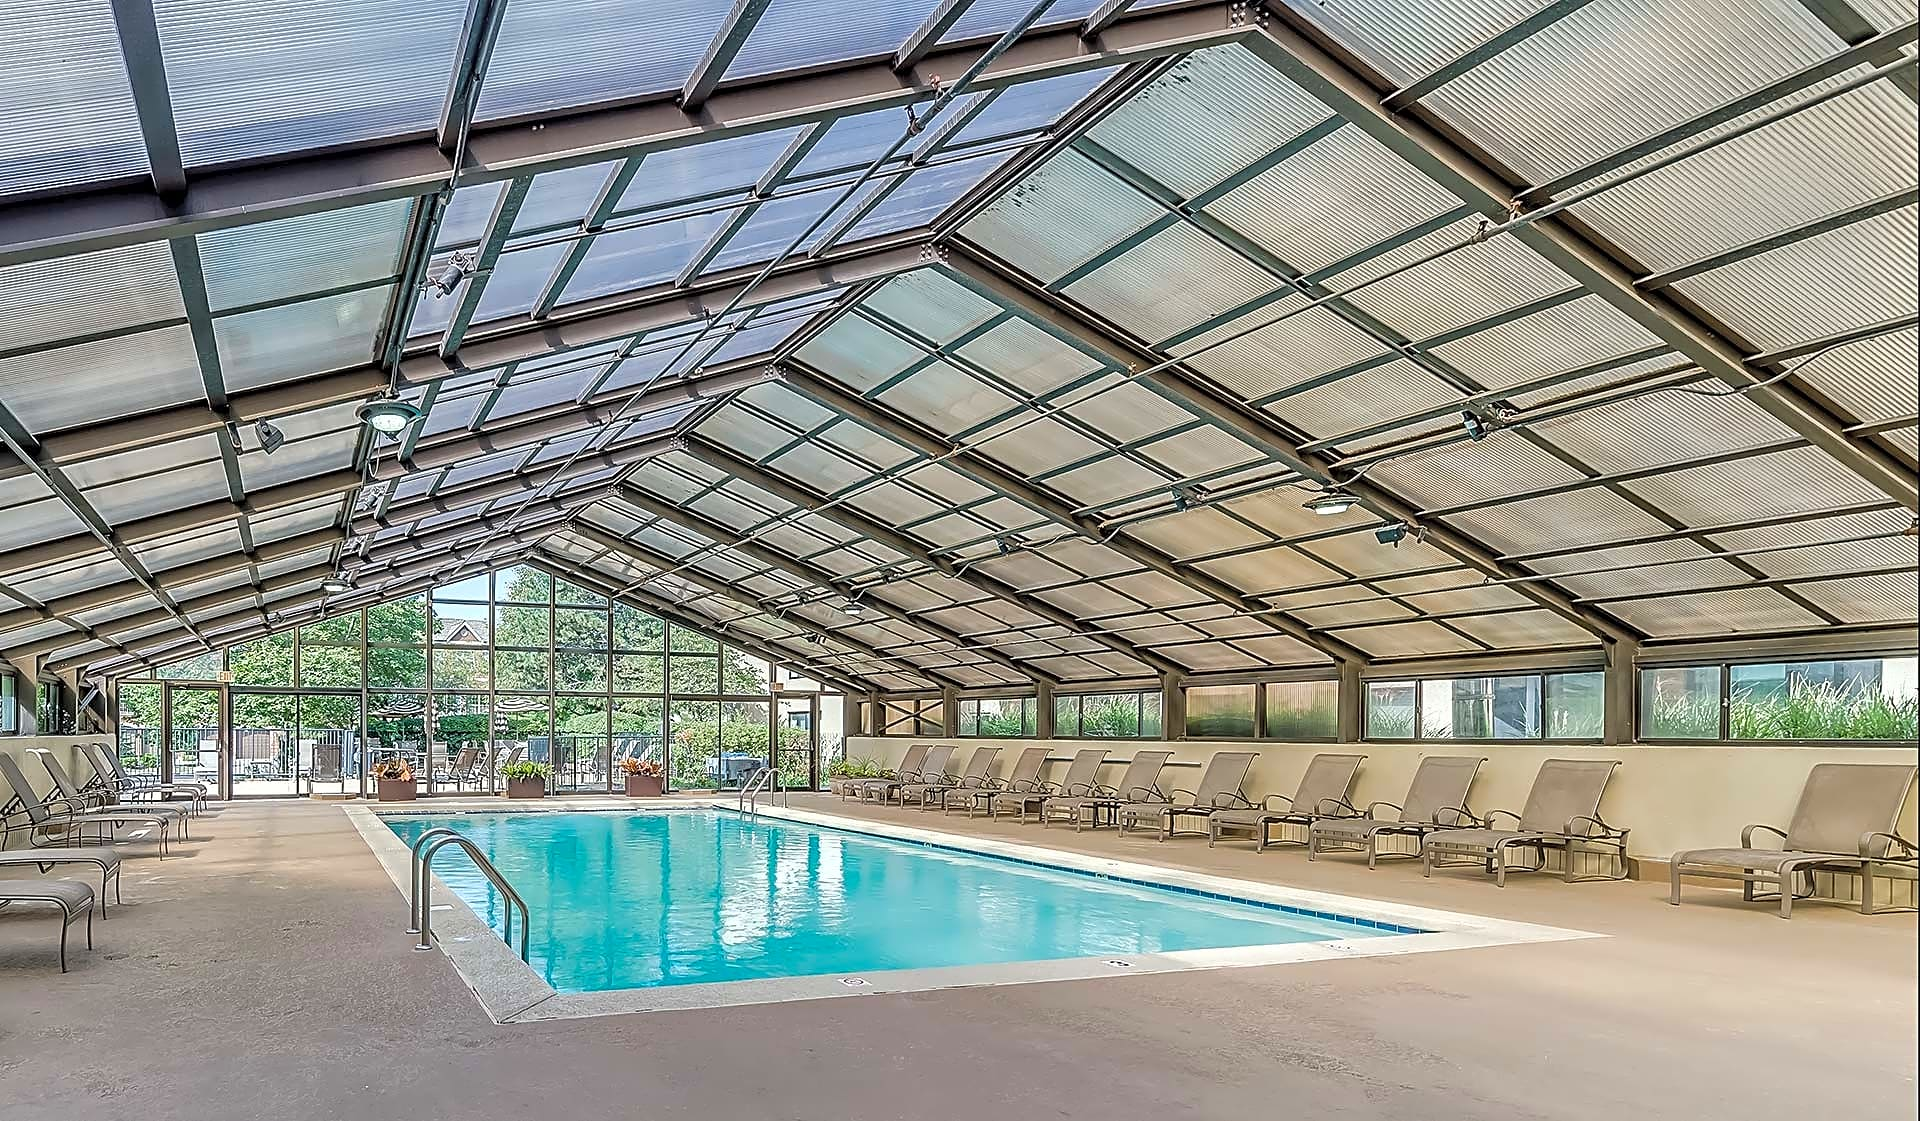 Large swimming pool with retractable roof